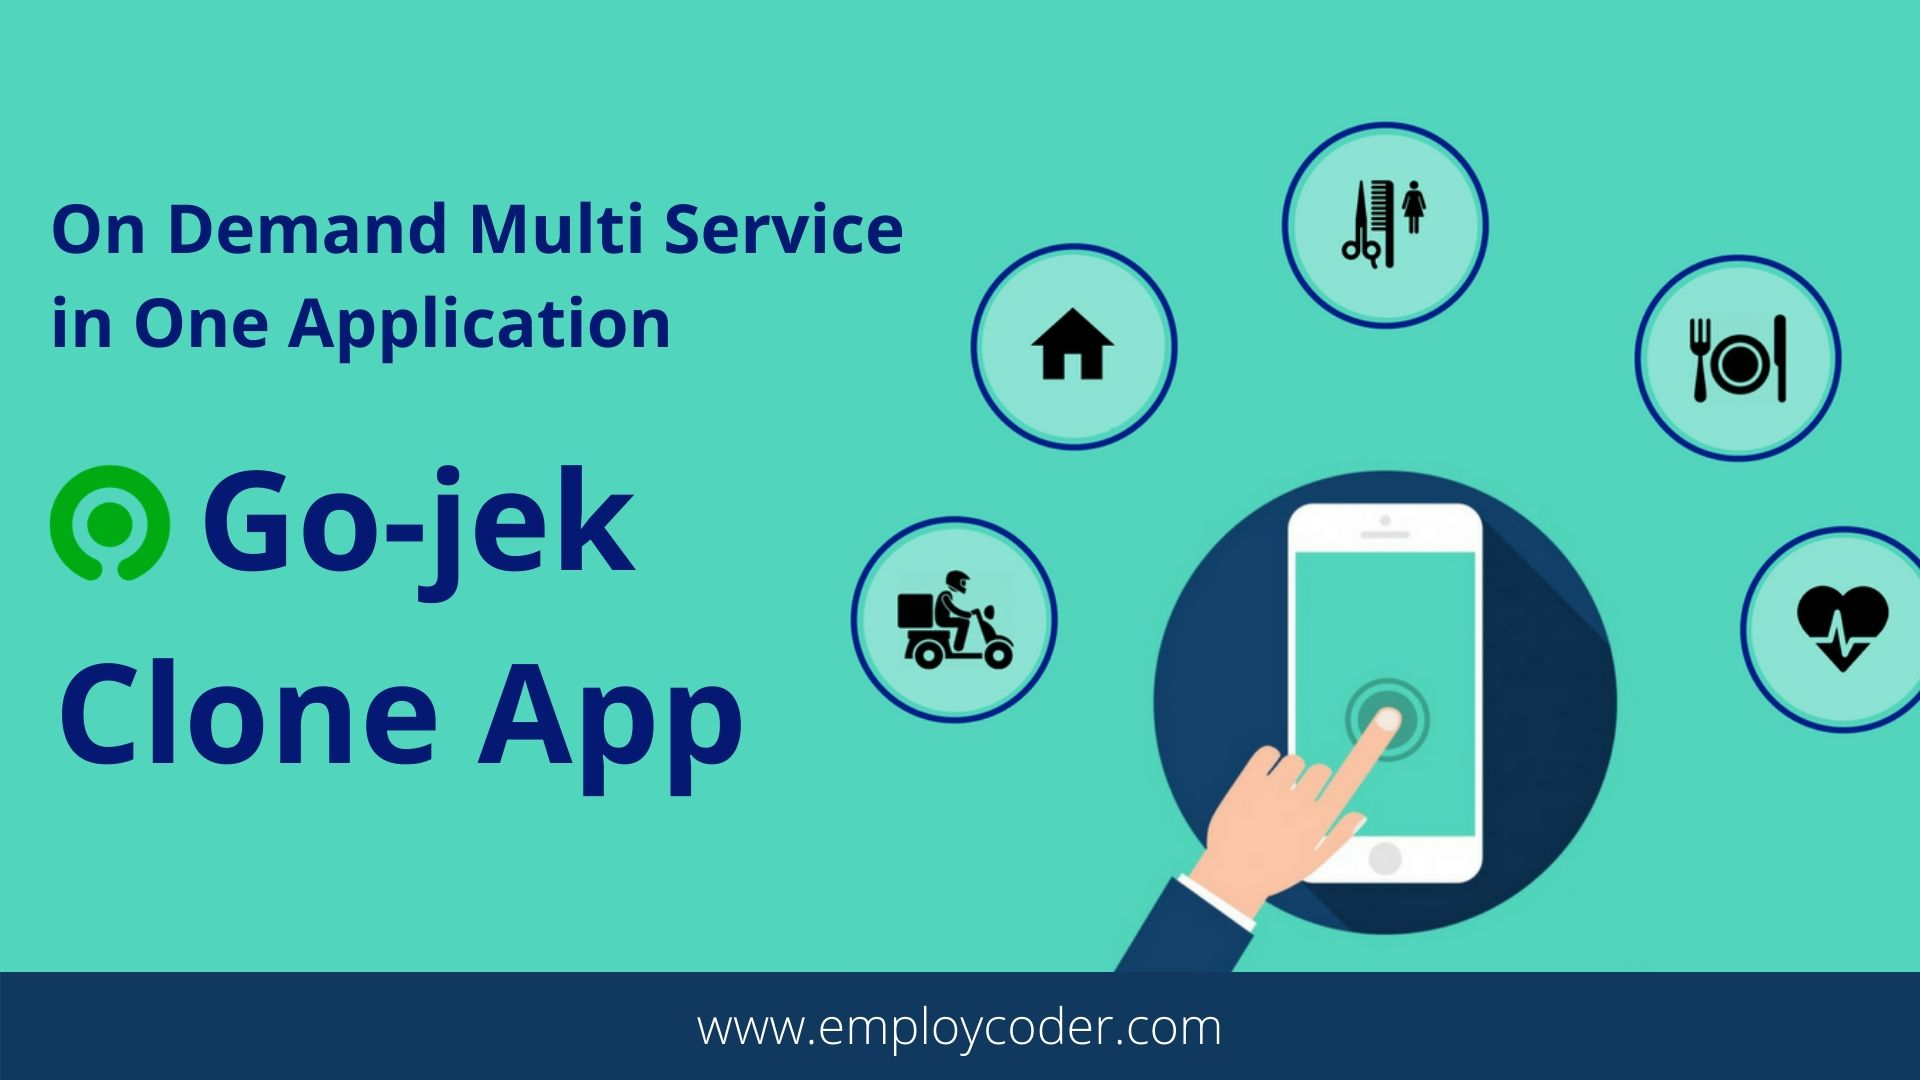 Gojek Clone App - Launch Your Own On-Demand Multi Service App